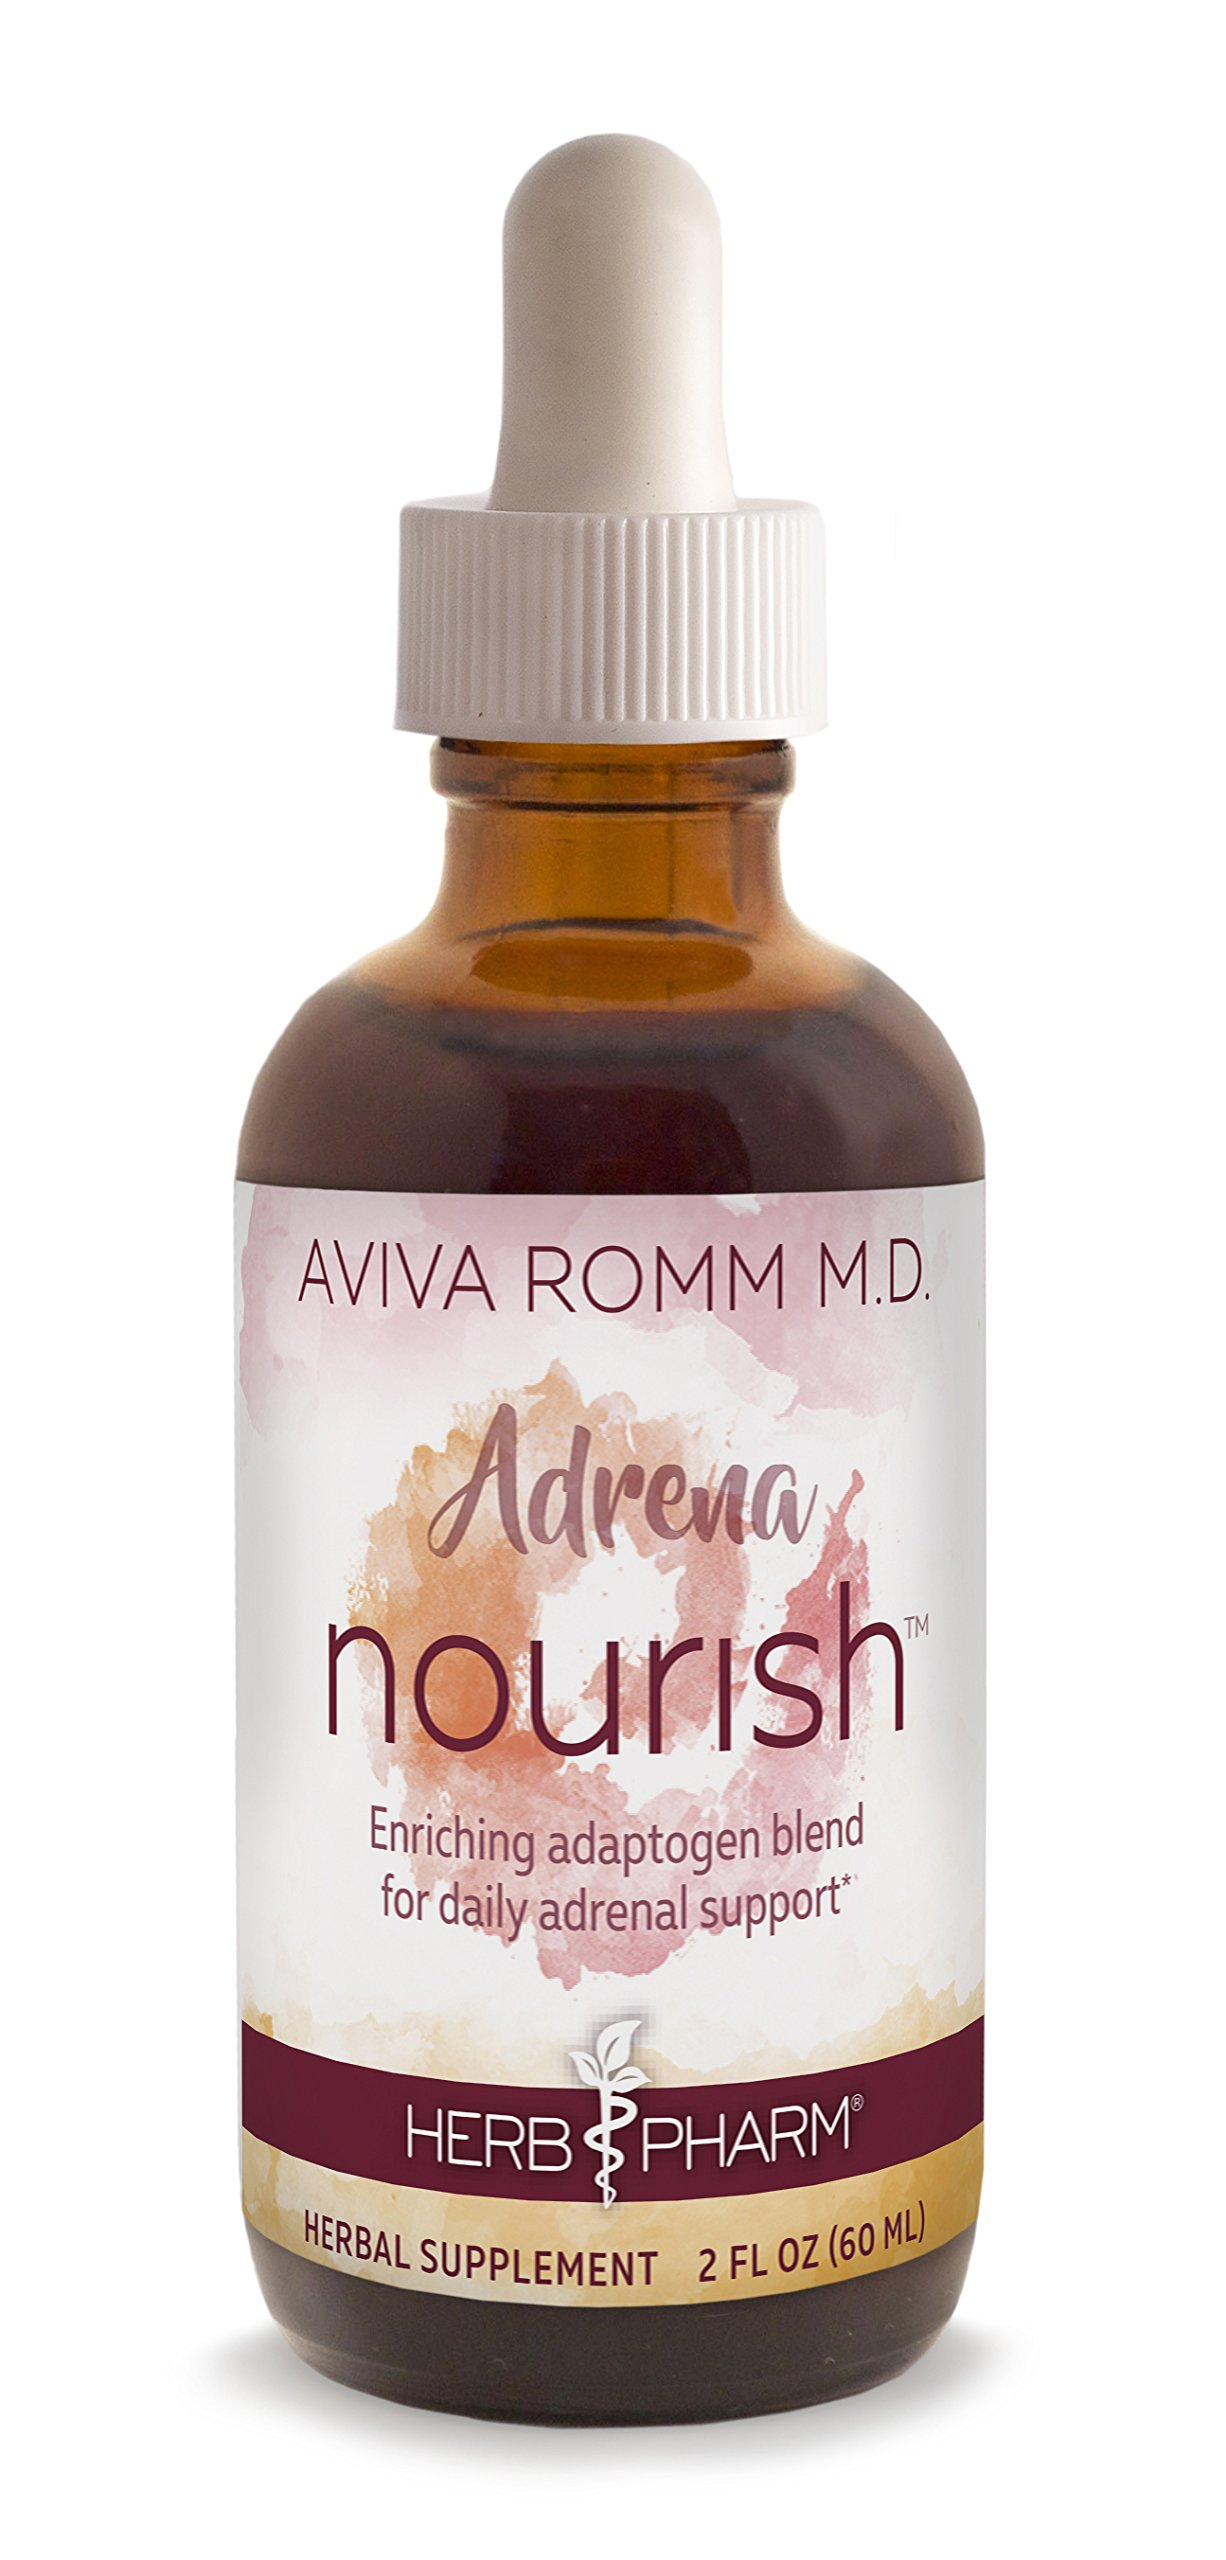 Herb Pharm Adrena Nourish Adaptogen Blend for Daily Adrenal Support Created in Collaboration with Dr. Aviva Romm, M.D.